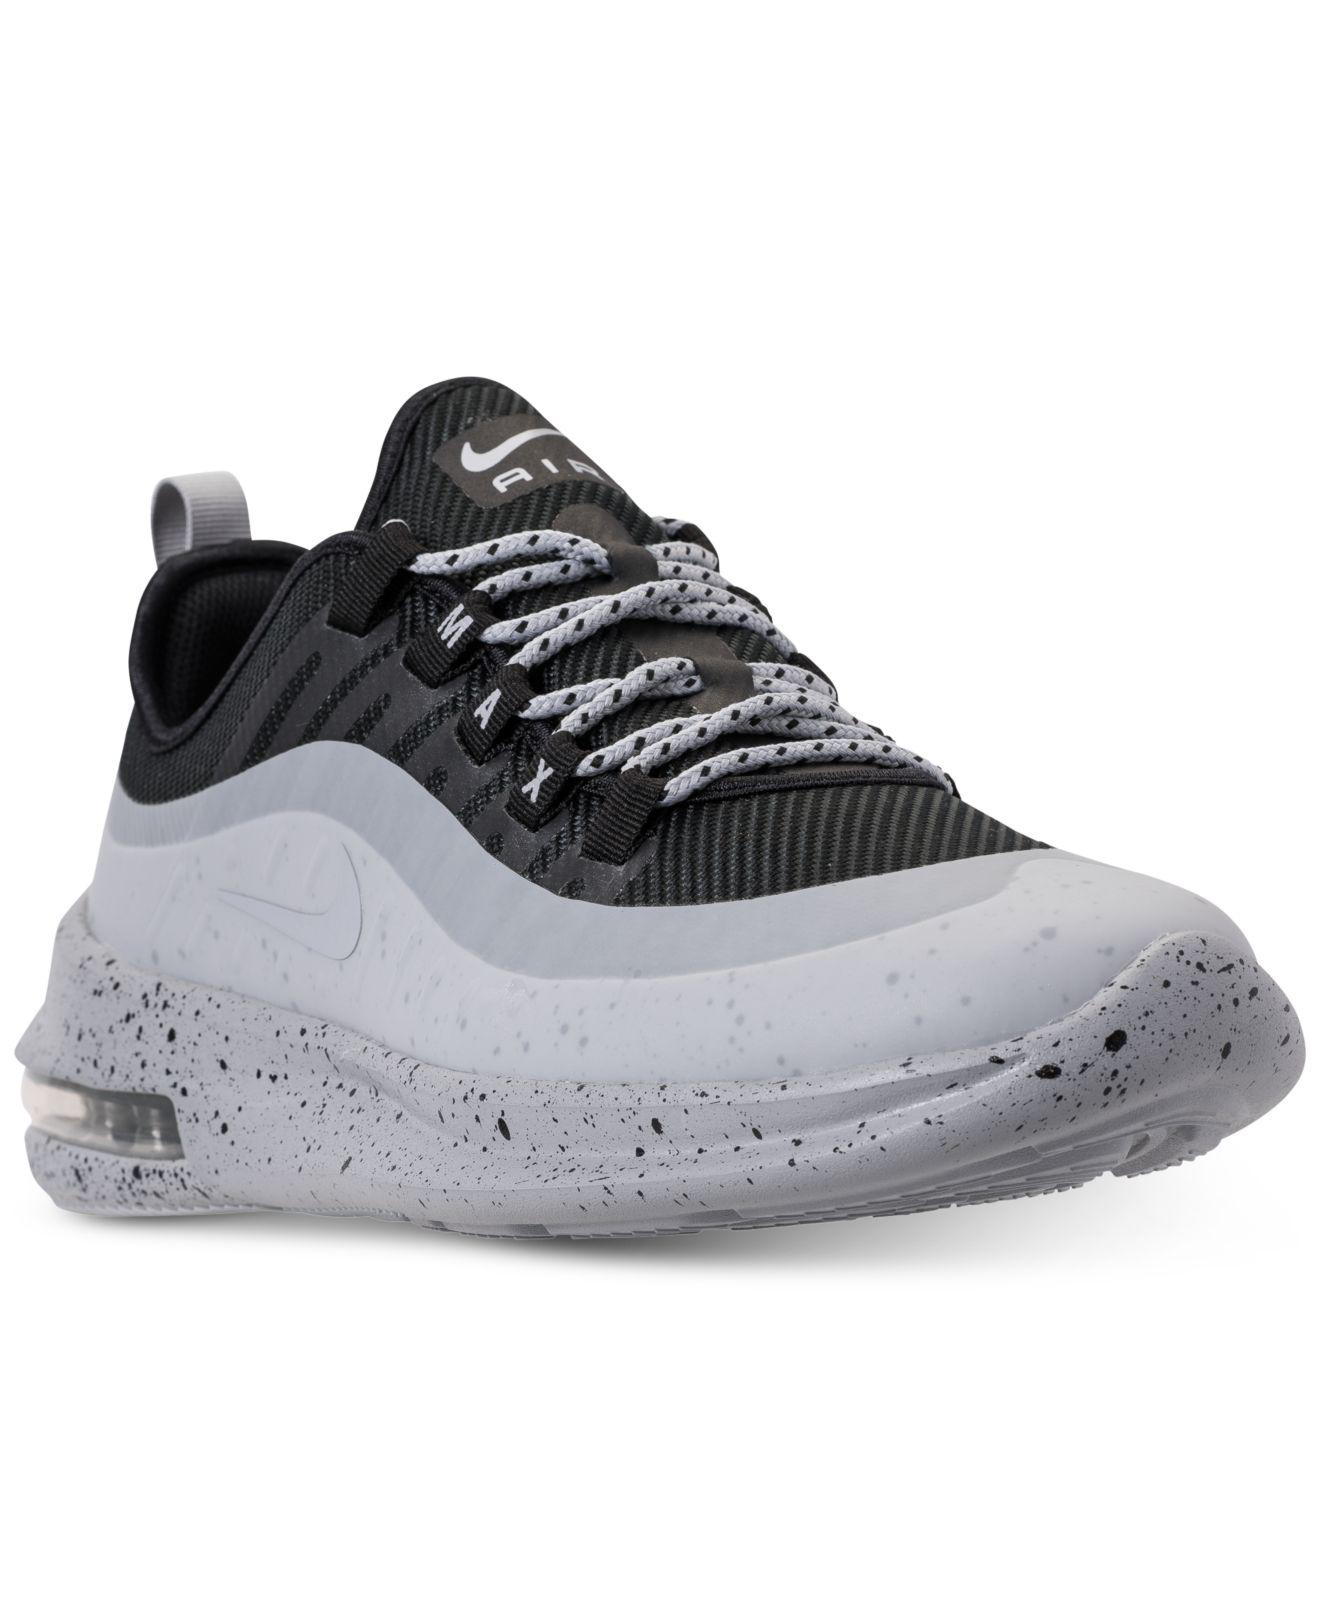 Lyst - Nike Air Max Axis Premium Casual Sneakers From Finish Line in ... f97e73ae7f6